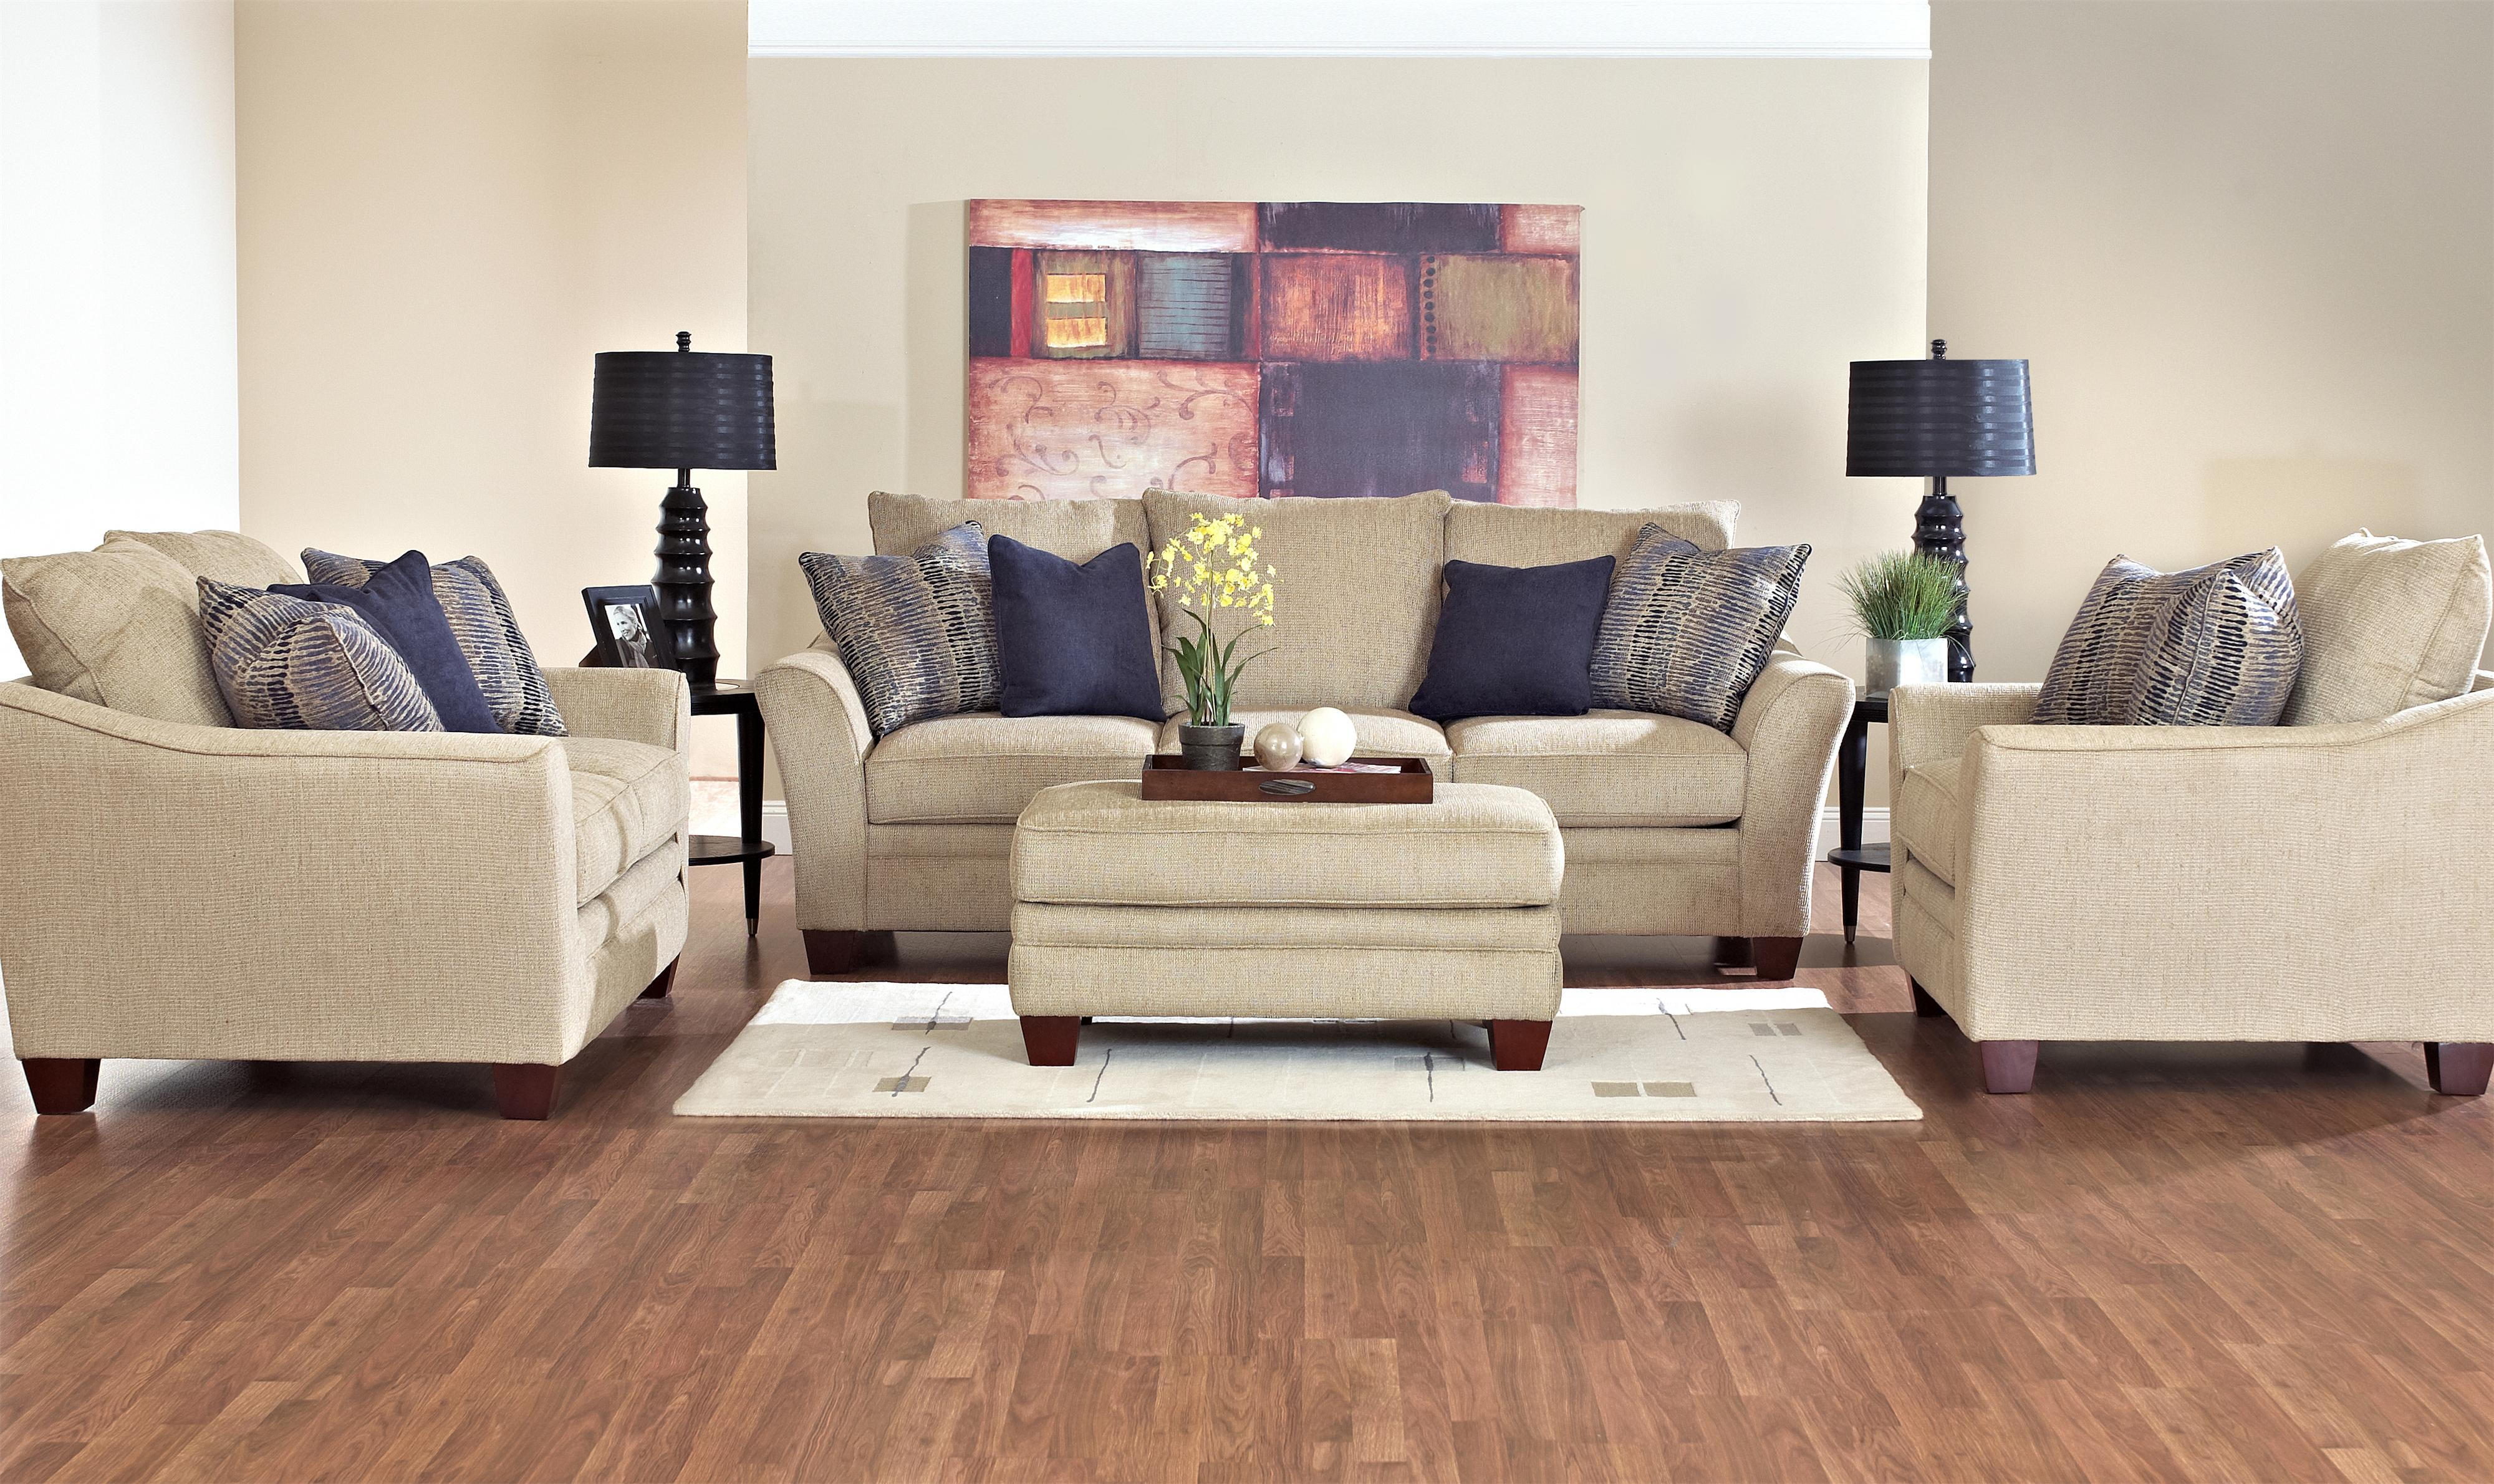 Posen Stationary Living Room Group by Klaussner at Northeast Factory Direct